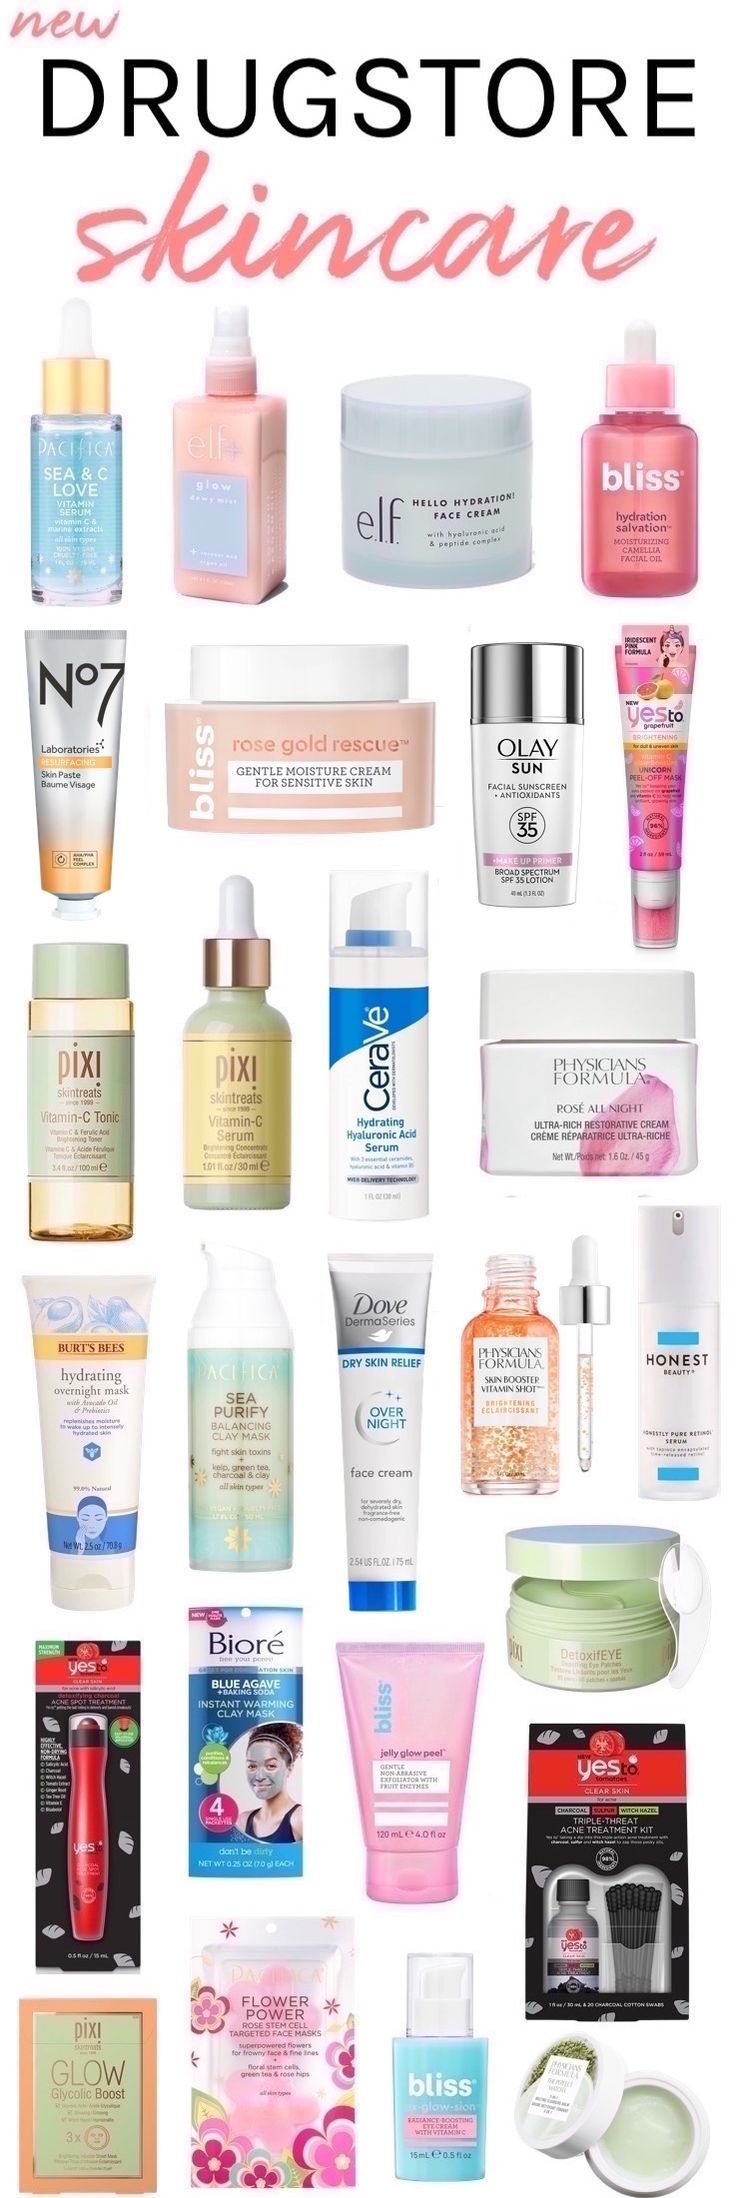 27 New Drugstore Skincare Picks You Won't Want to Miss! 27 New Drugstore Skincare Picks You Won't Want to Miss!